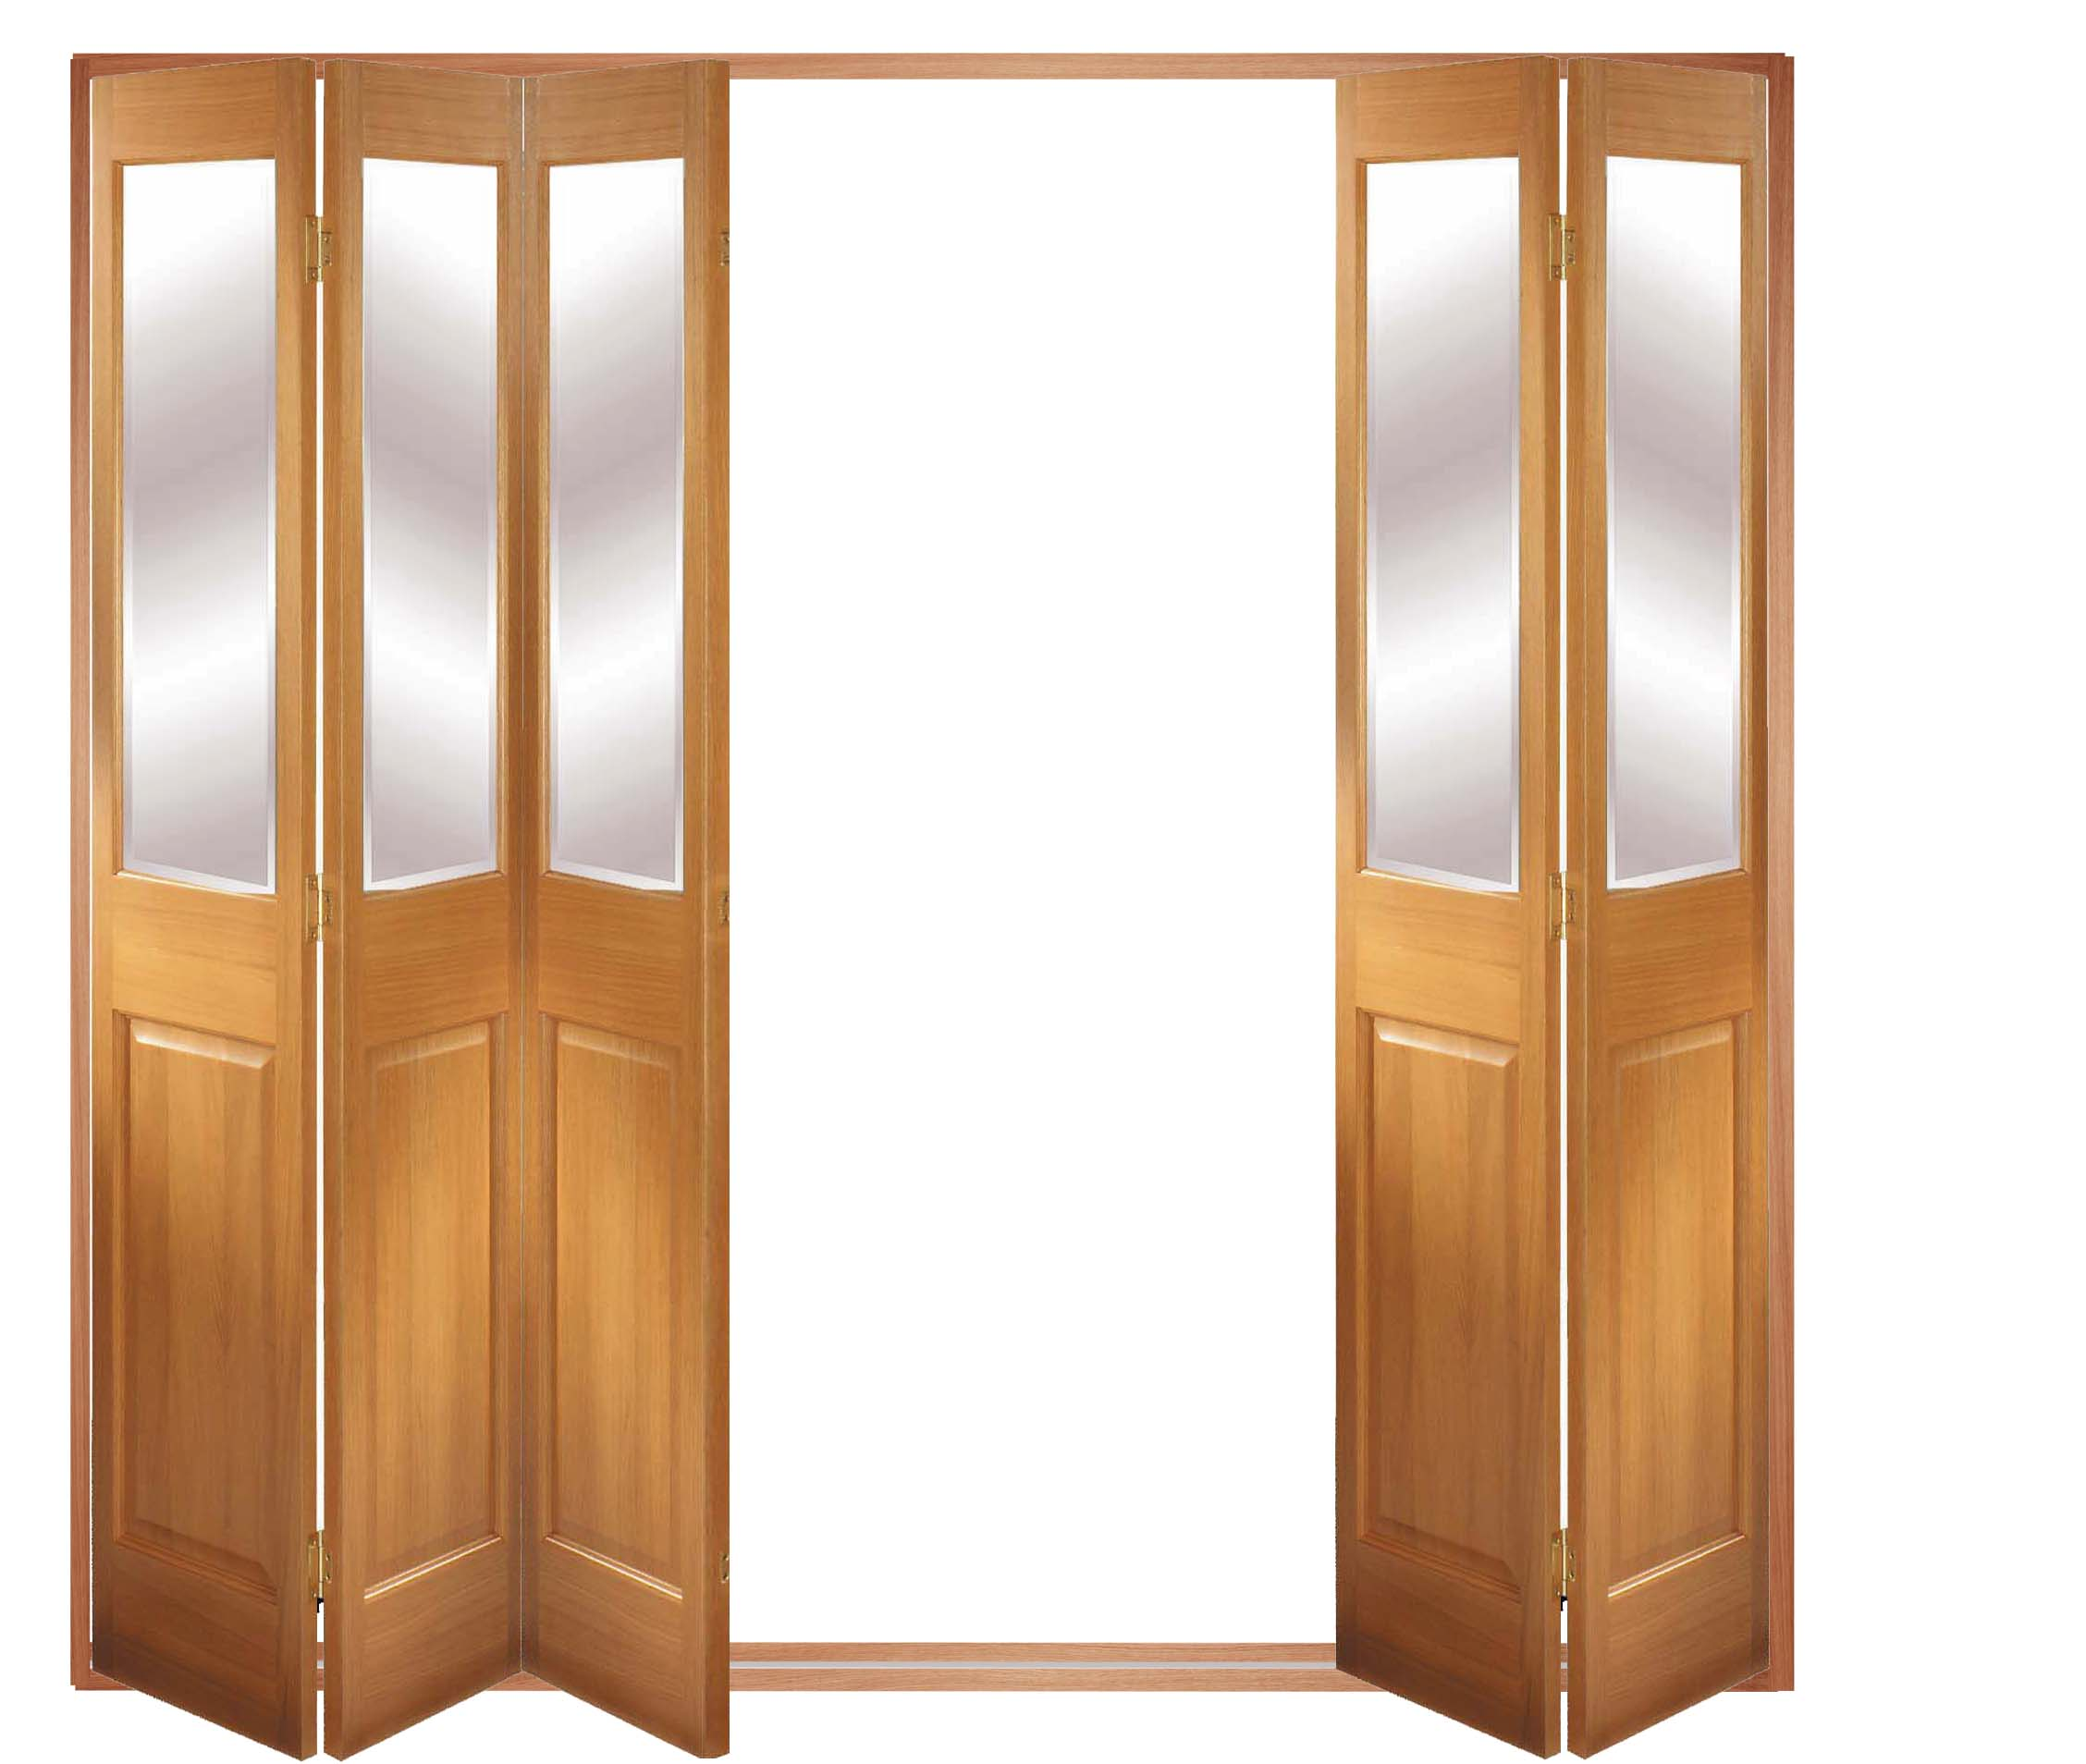 Bifold Interior Folding Doors : Reasons to install interior sliding folding doors